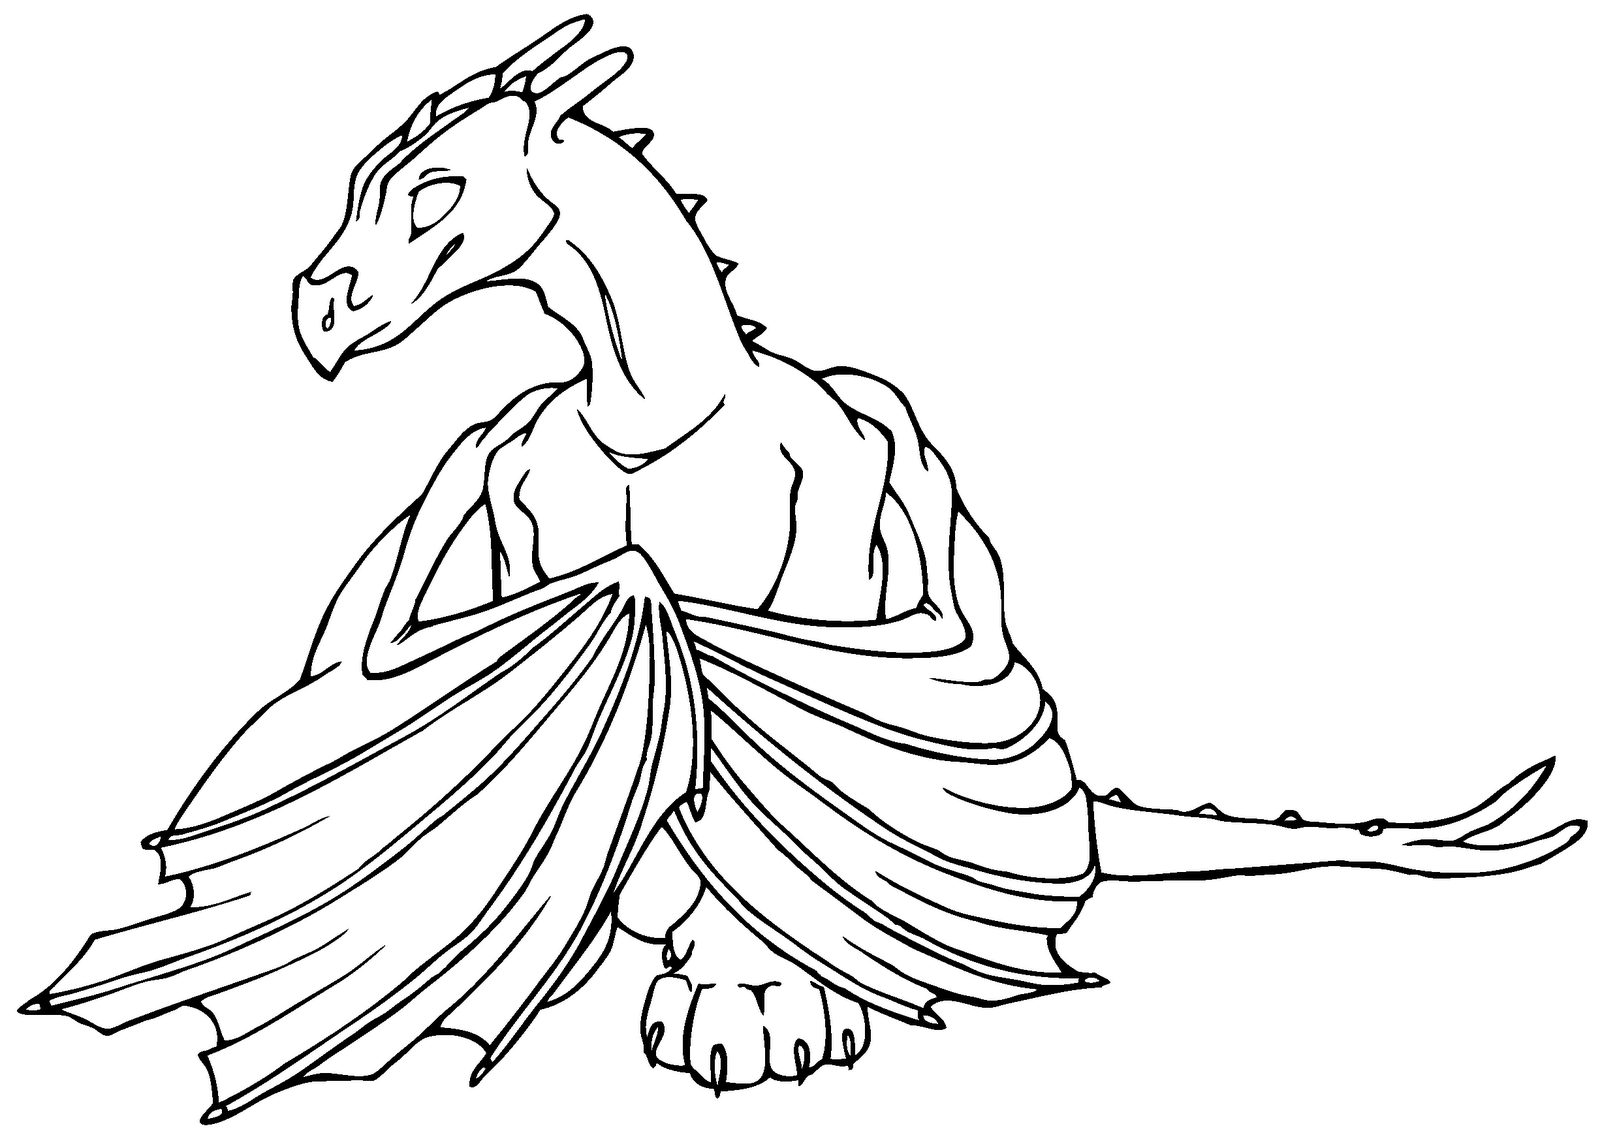 dragon coloring pages - Google Search | Coloring pages | Pinterest ...